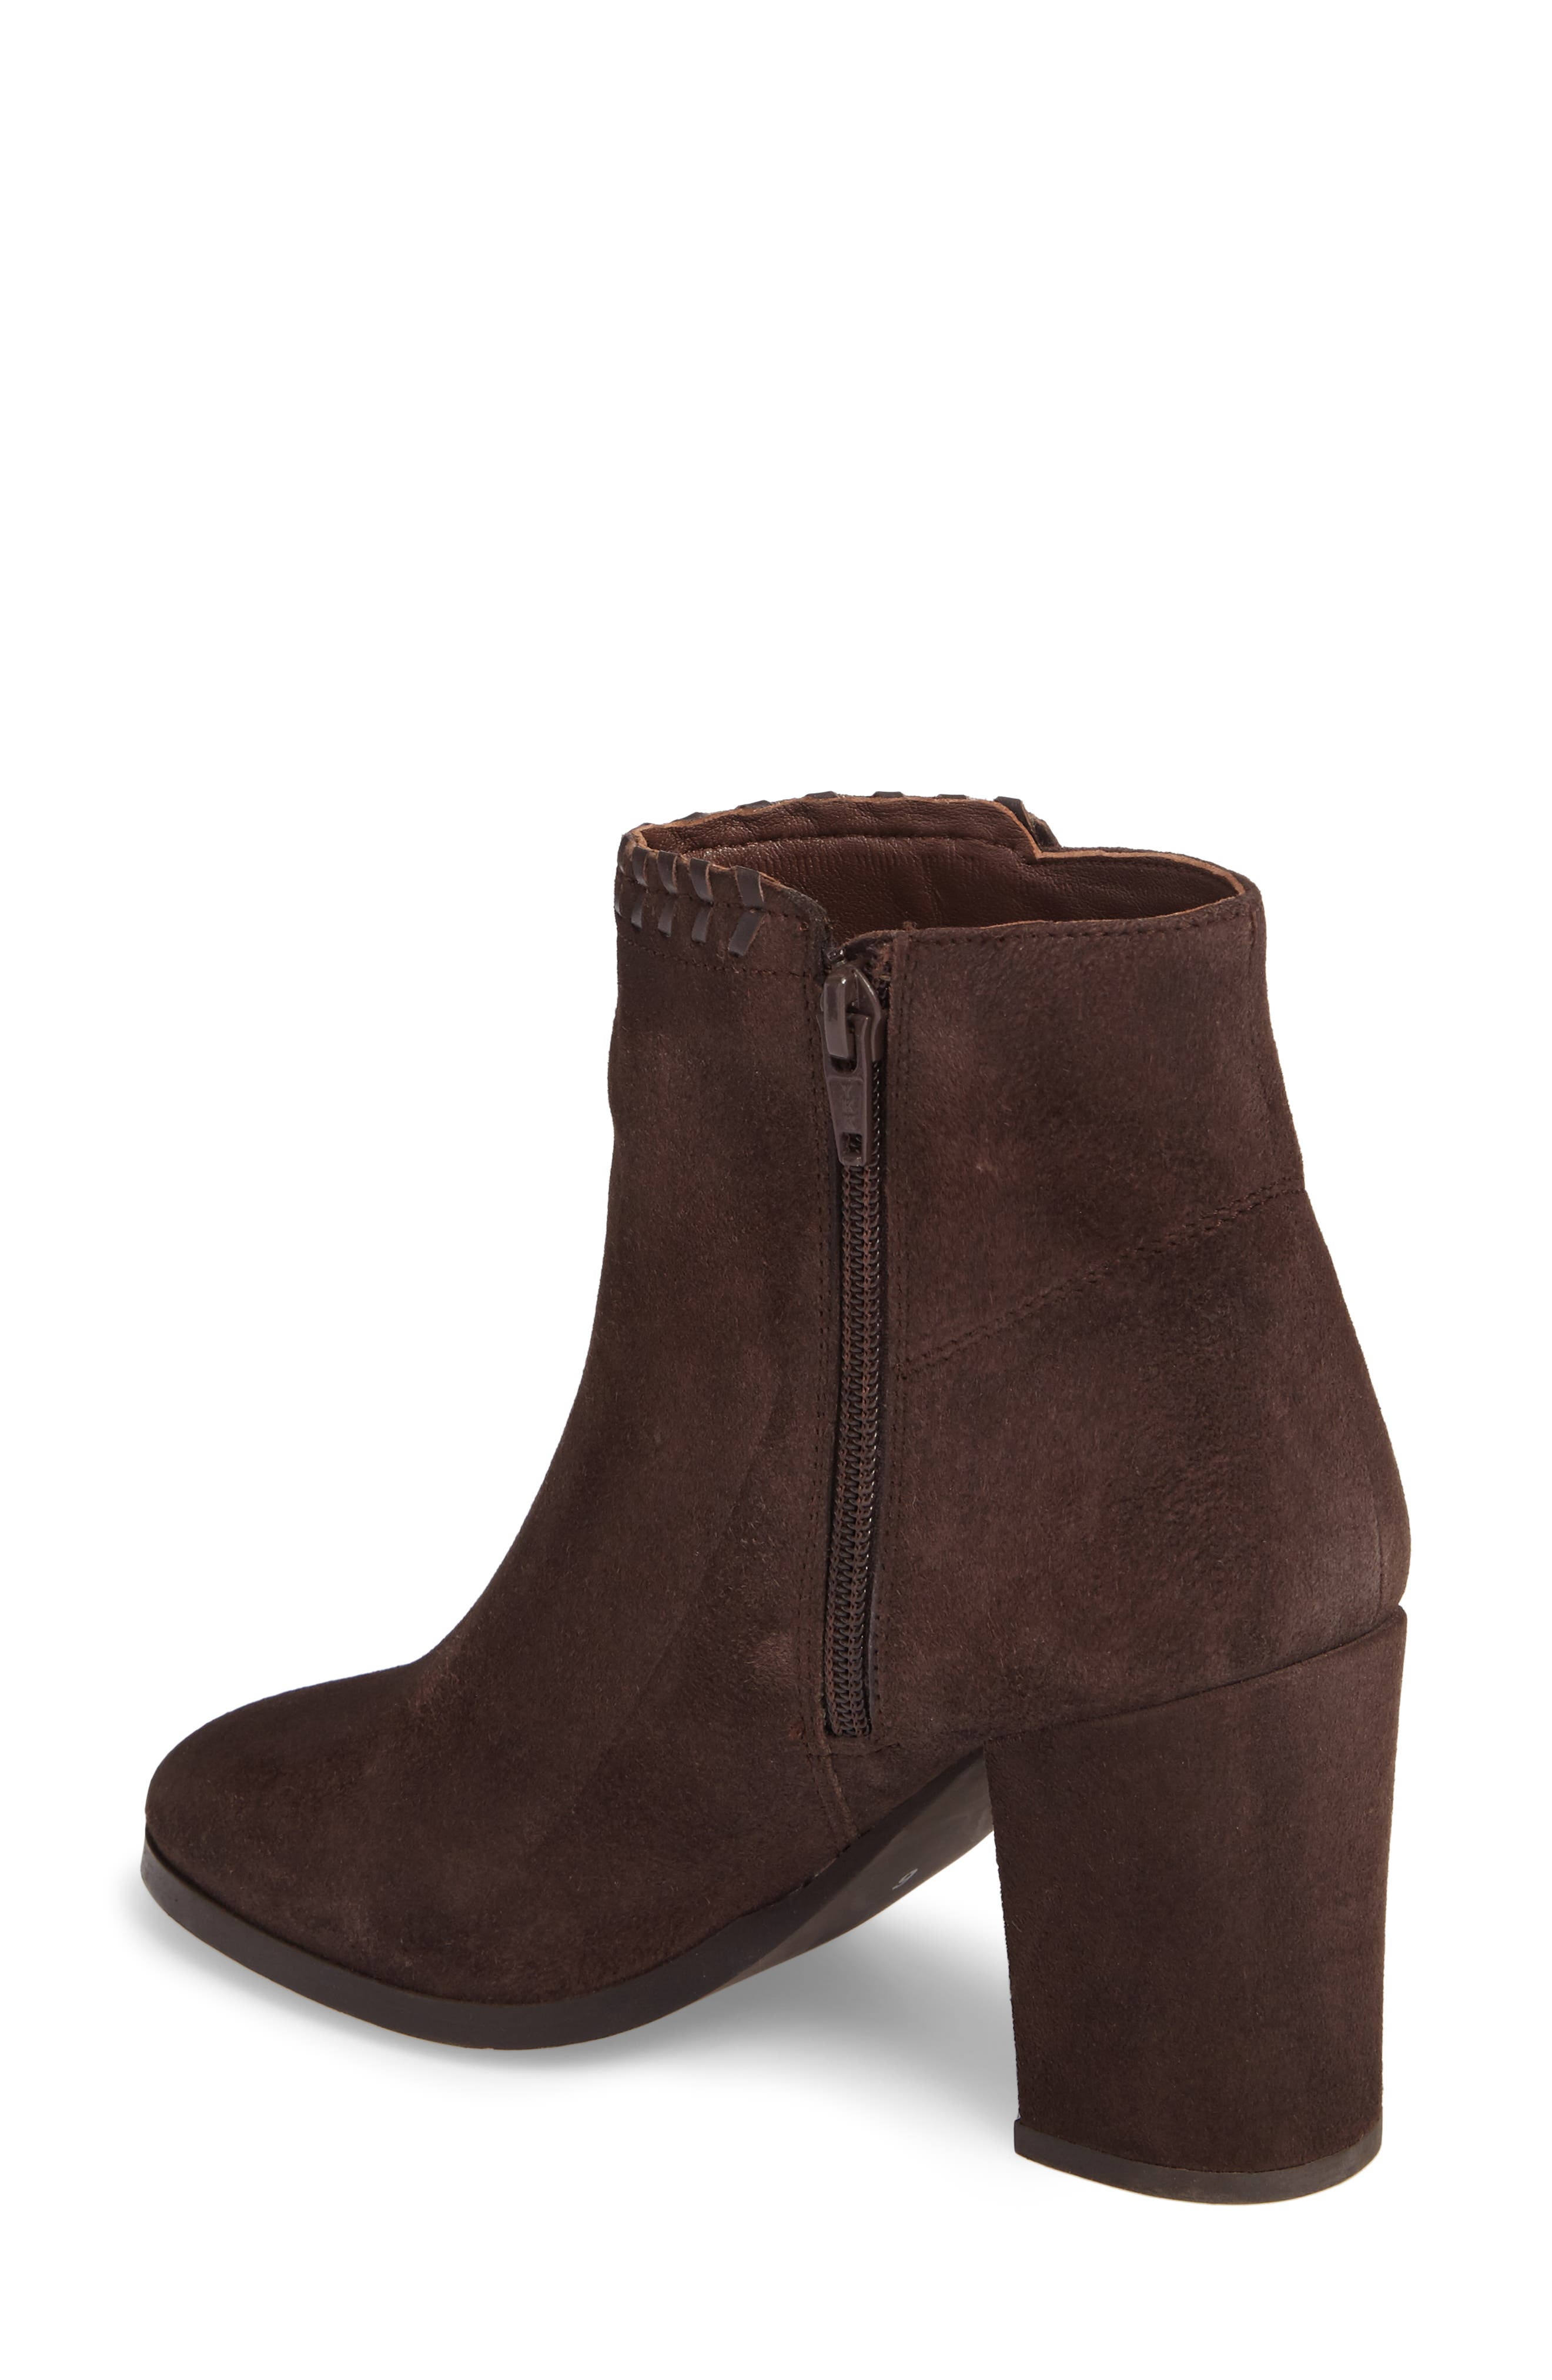 Heavenly Bootie,                             Alternate thumbnail 2, color,                             Taupe Suede